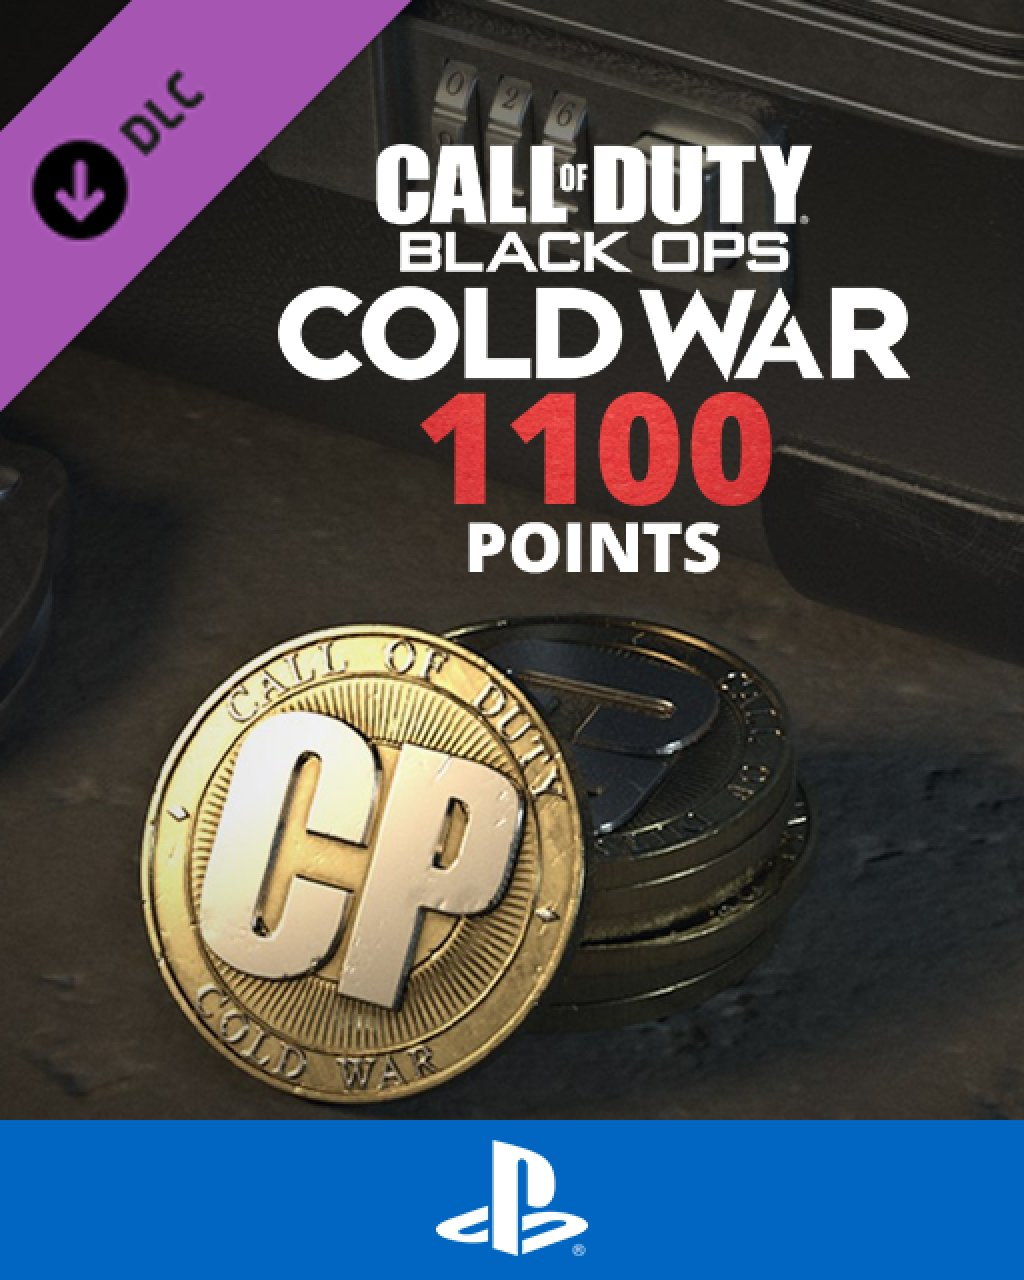 Call of Duty Black Ops Cold War 1100 Points